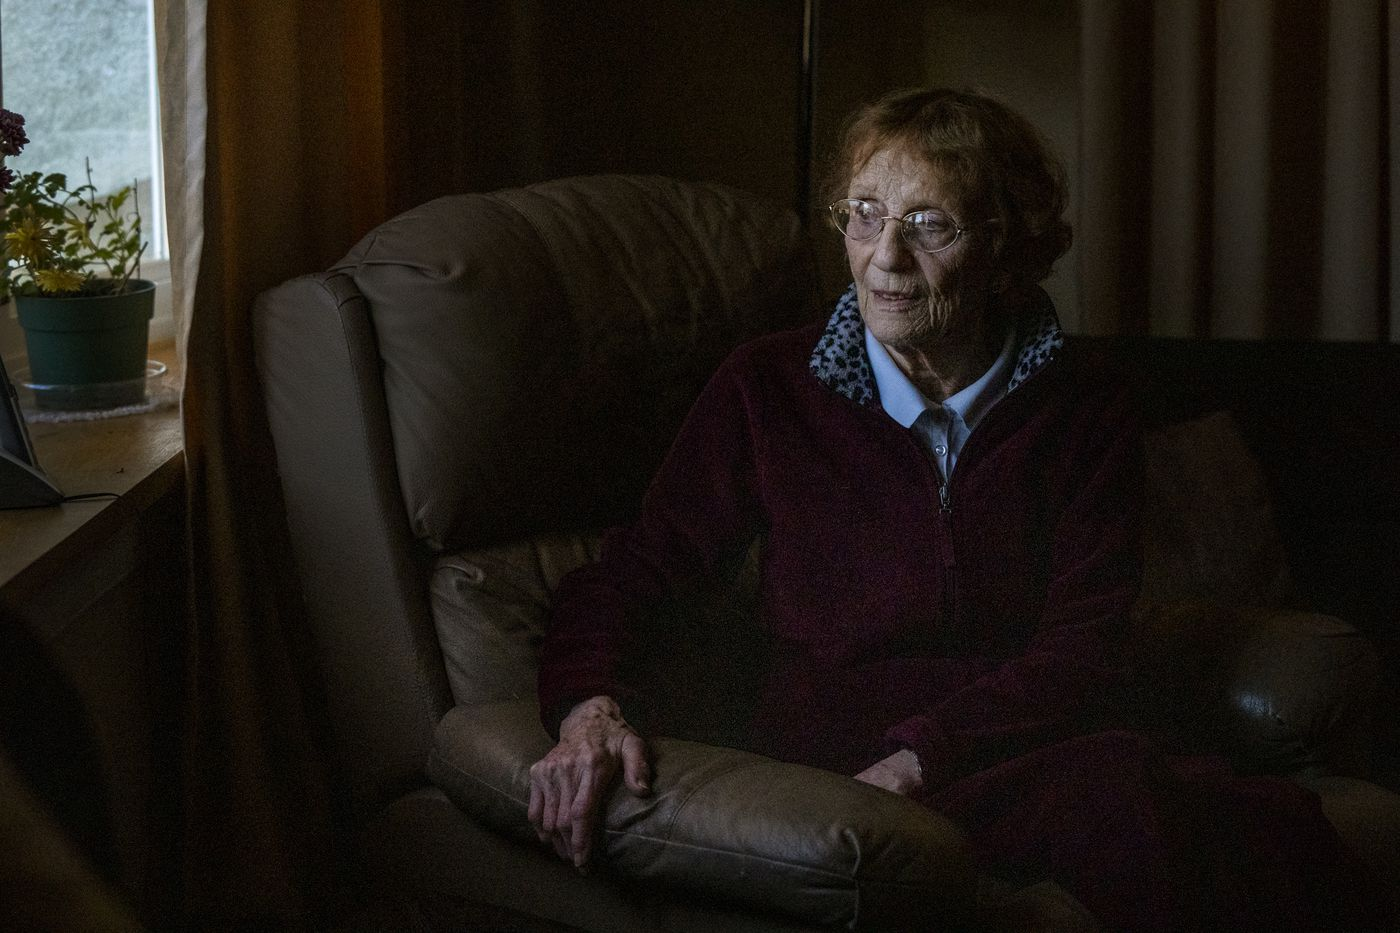 Jenkintown Holocaust Survivor Travels With Family To Auschwitz 75 Years After Its Liberation